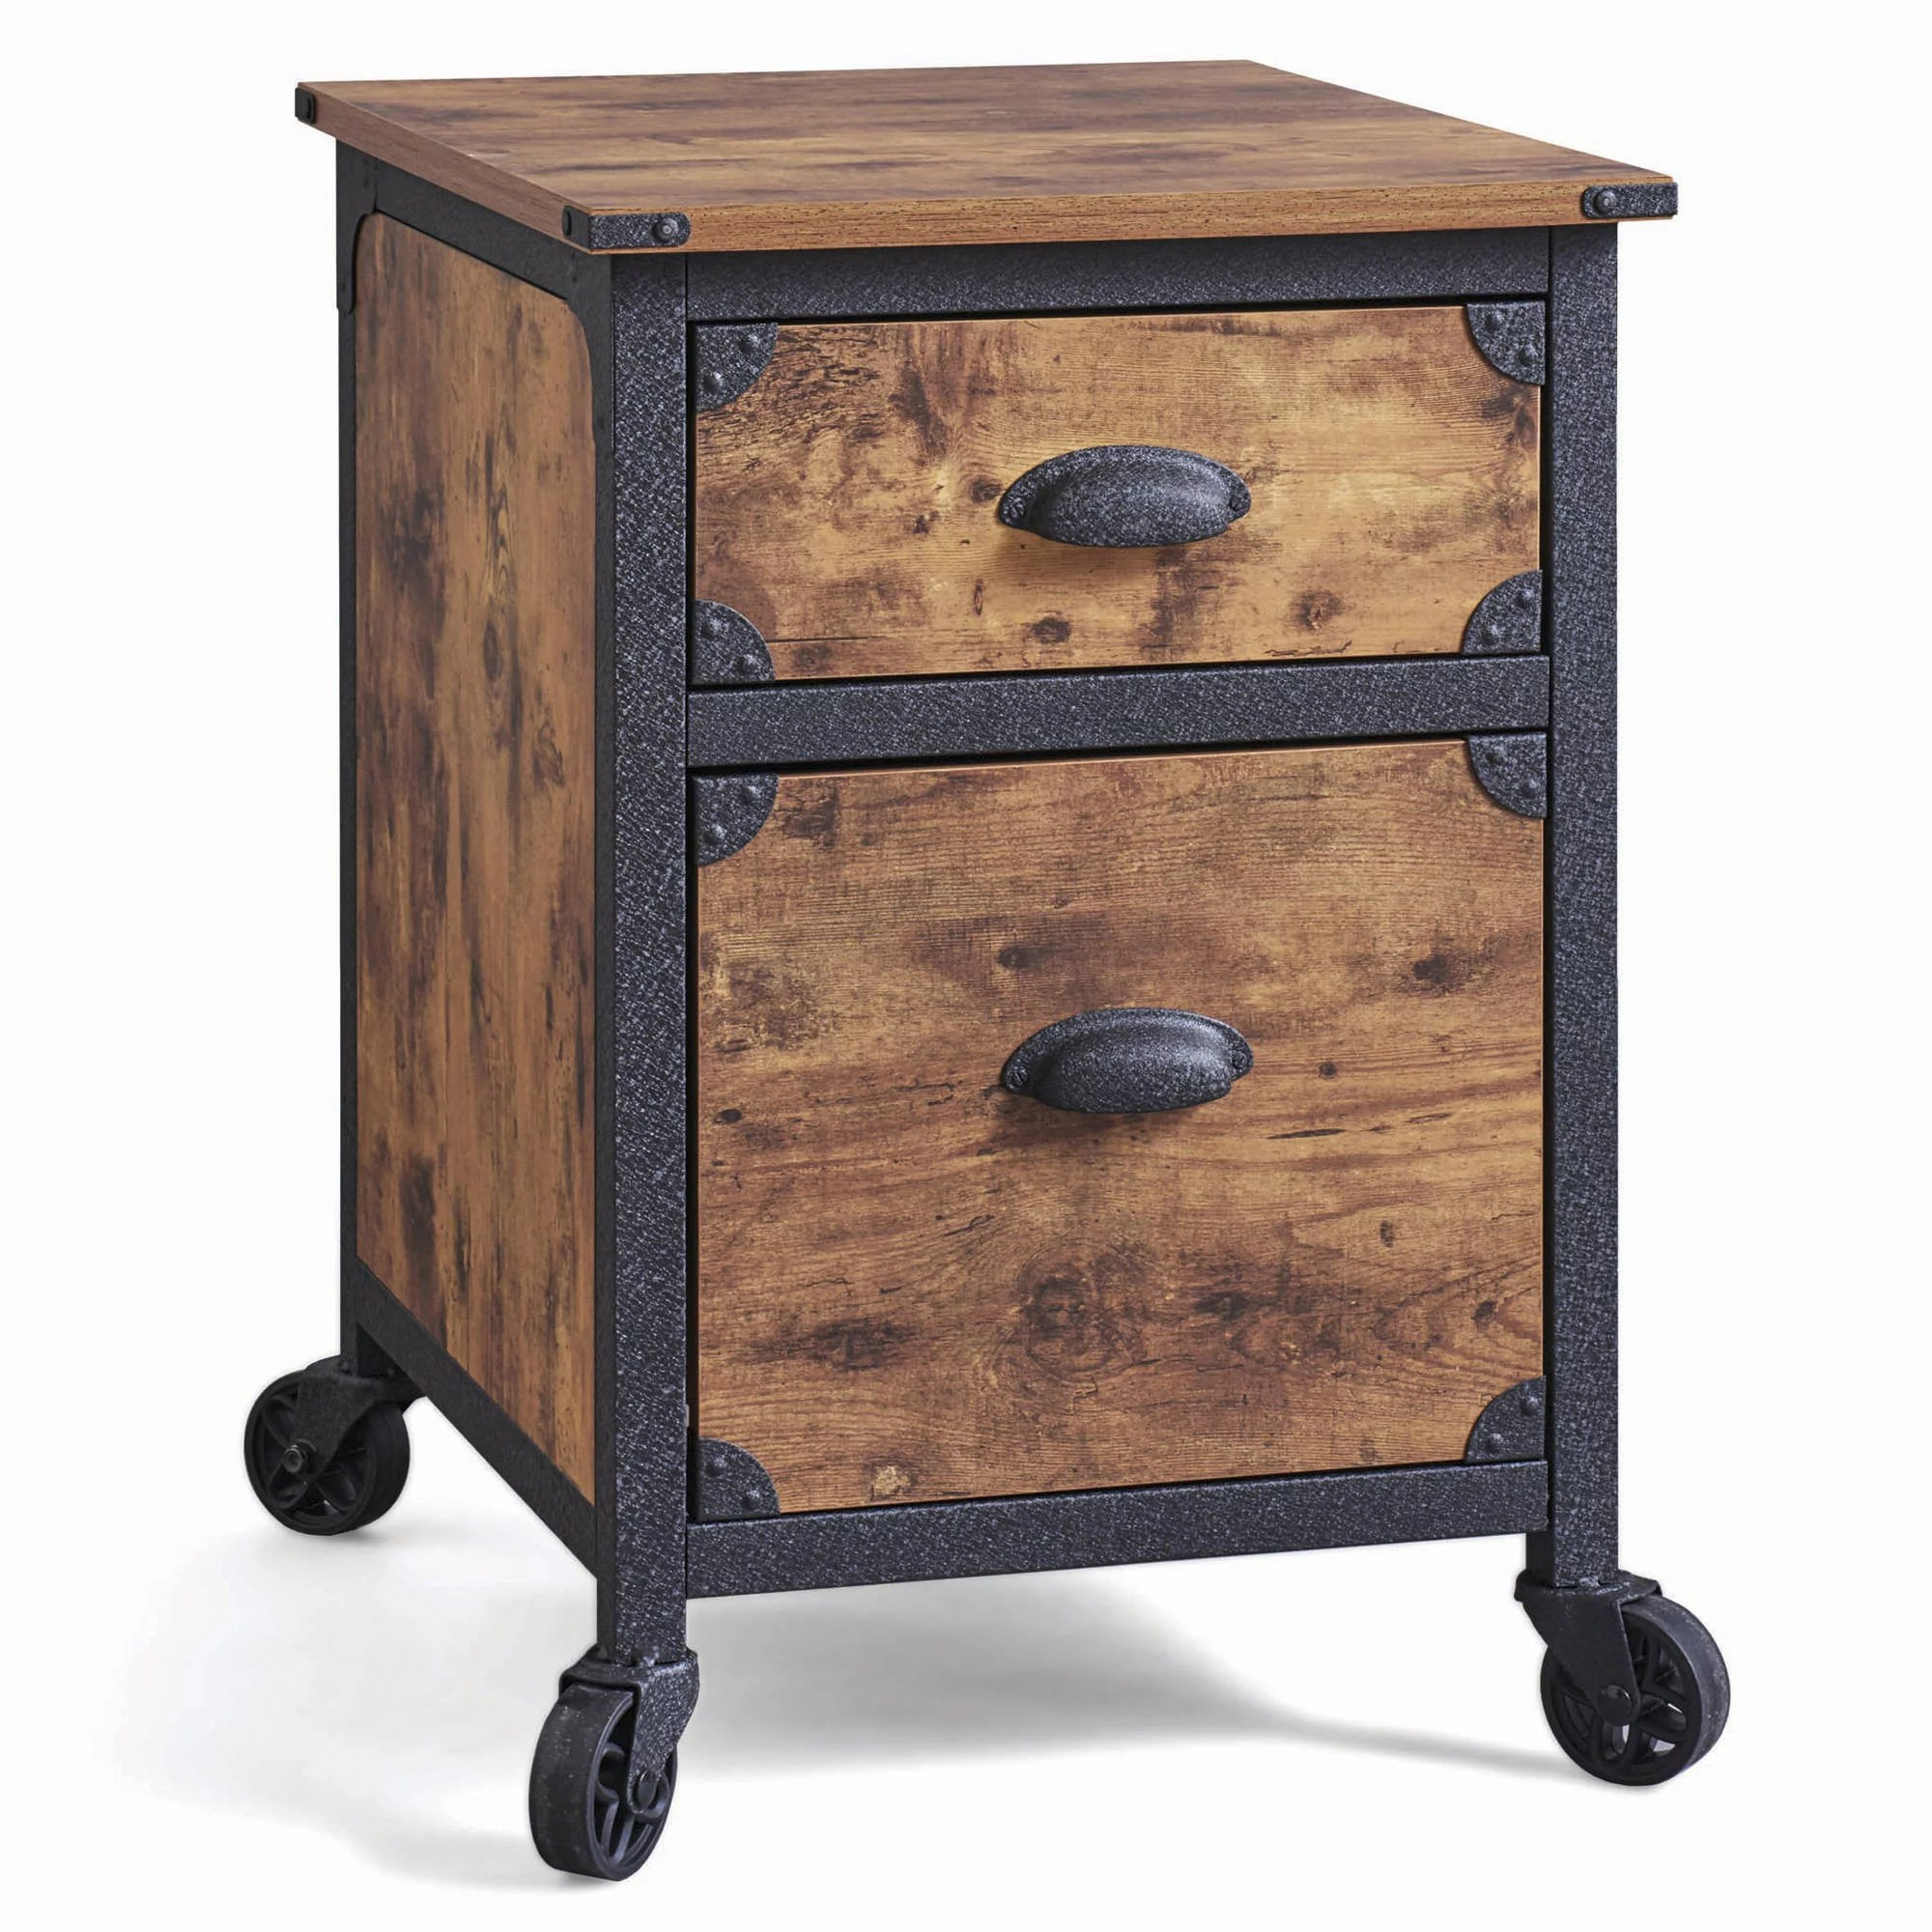 Cabinet Drawers Better Homes Gardens 2 Drawer Rustic Country File Cabinet Weathered Pine Finish